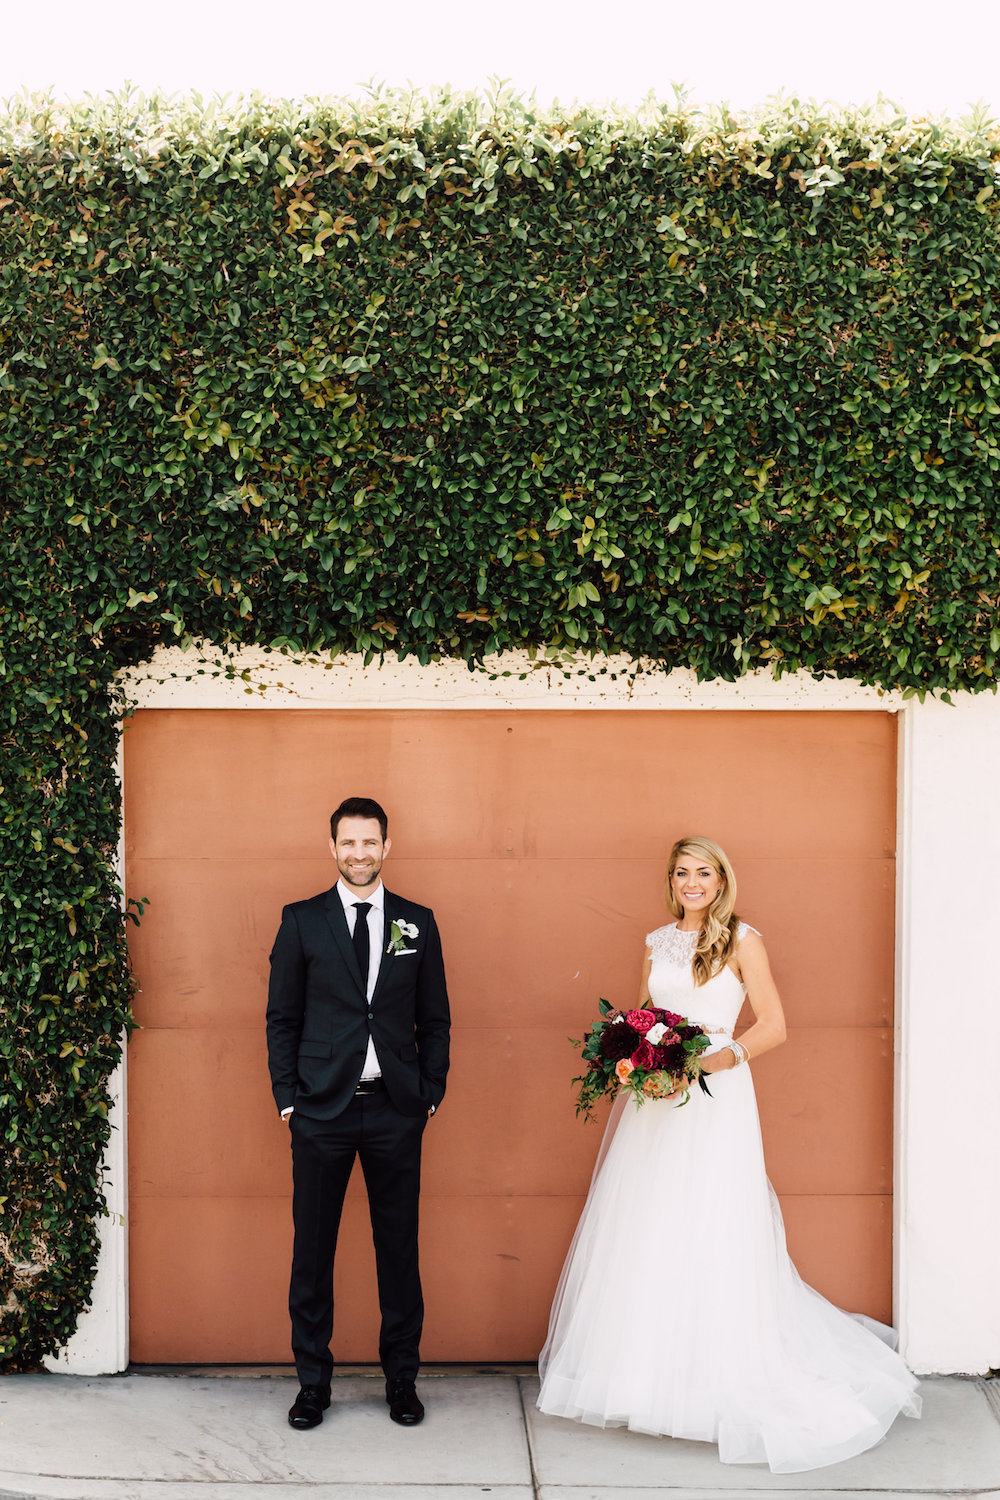 Classic, modern jewel tone wedding by Compass Floral. Venue: The Darlington House, La Jolla. Photographer: Plum & Oak